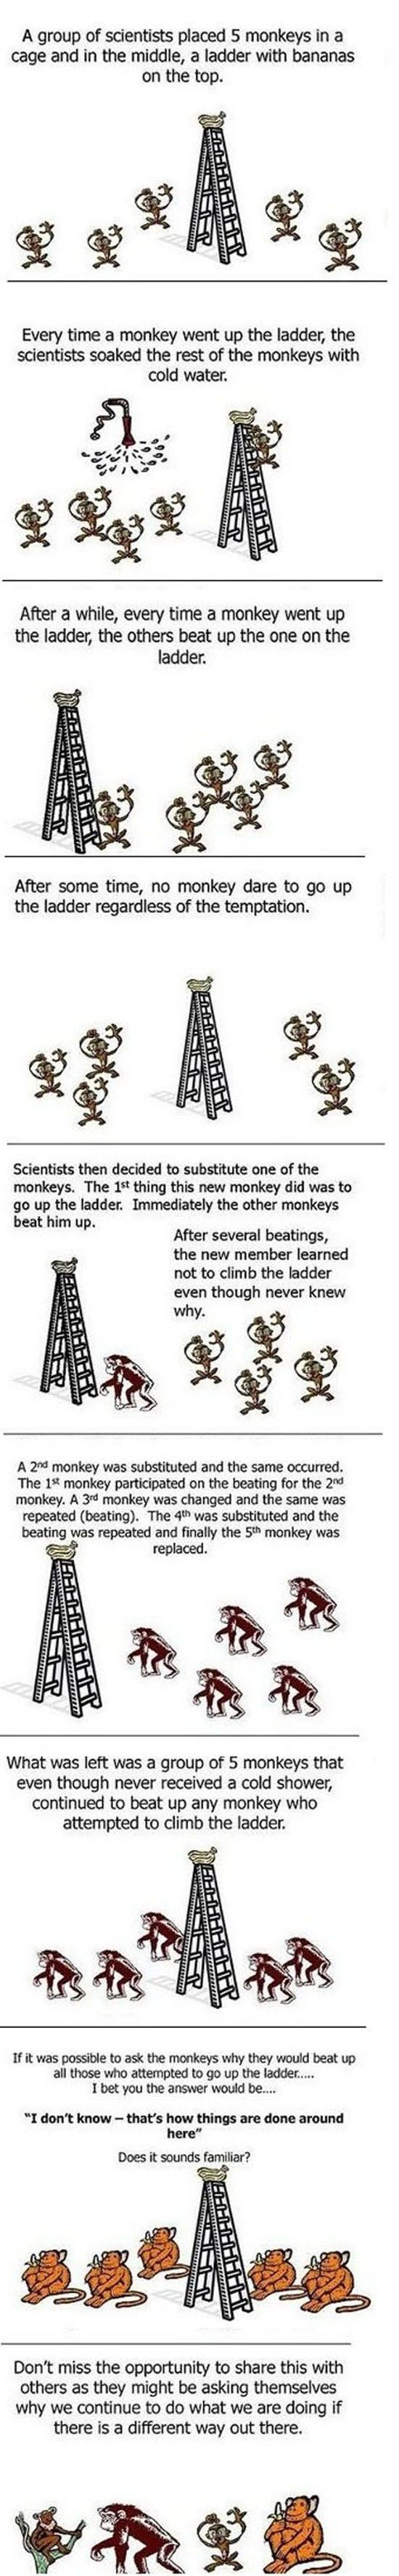 The Curious Monkey Experiment   ( people need to stop and think )